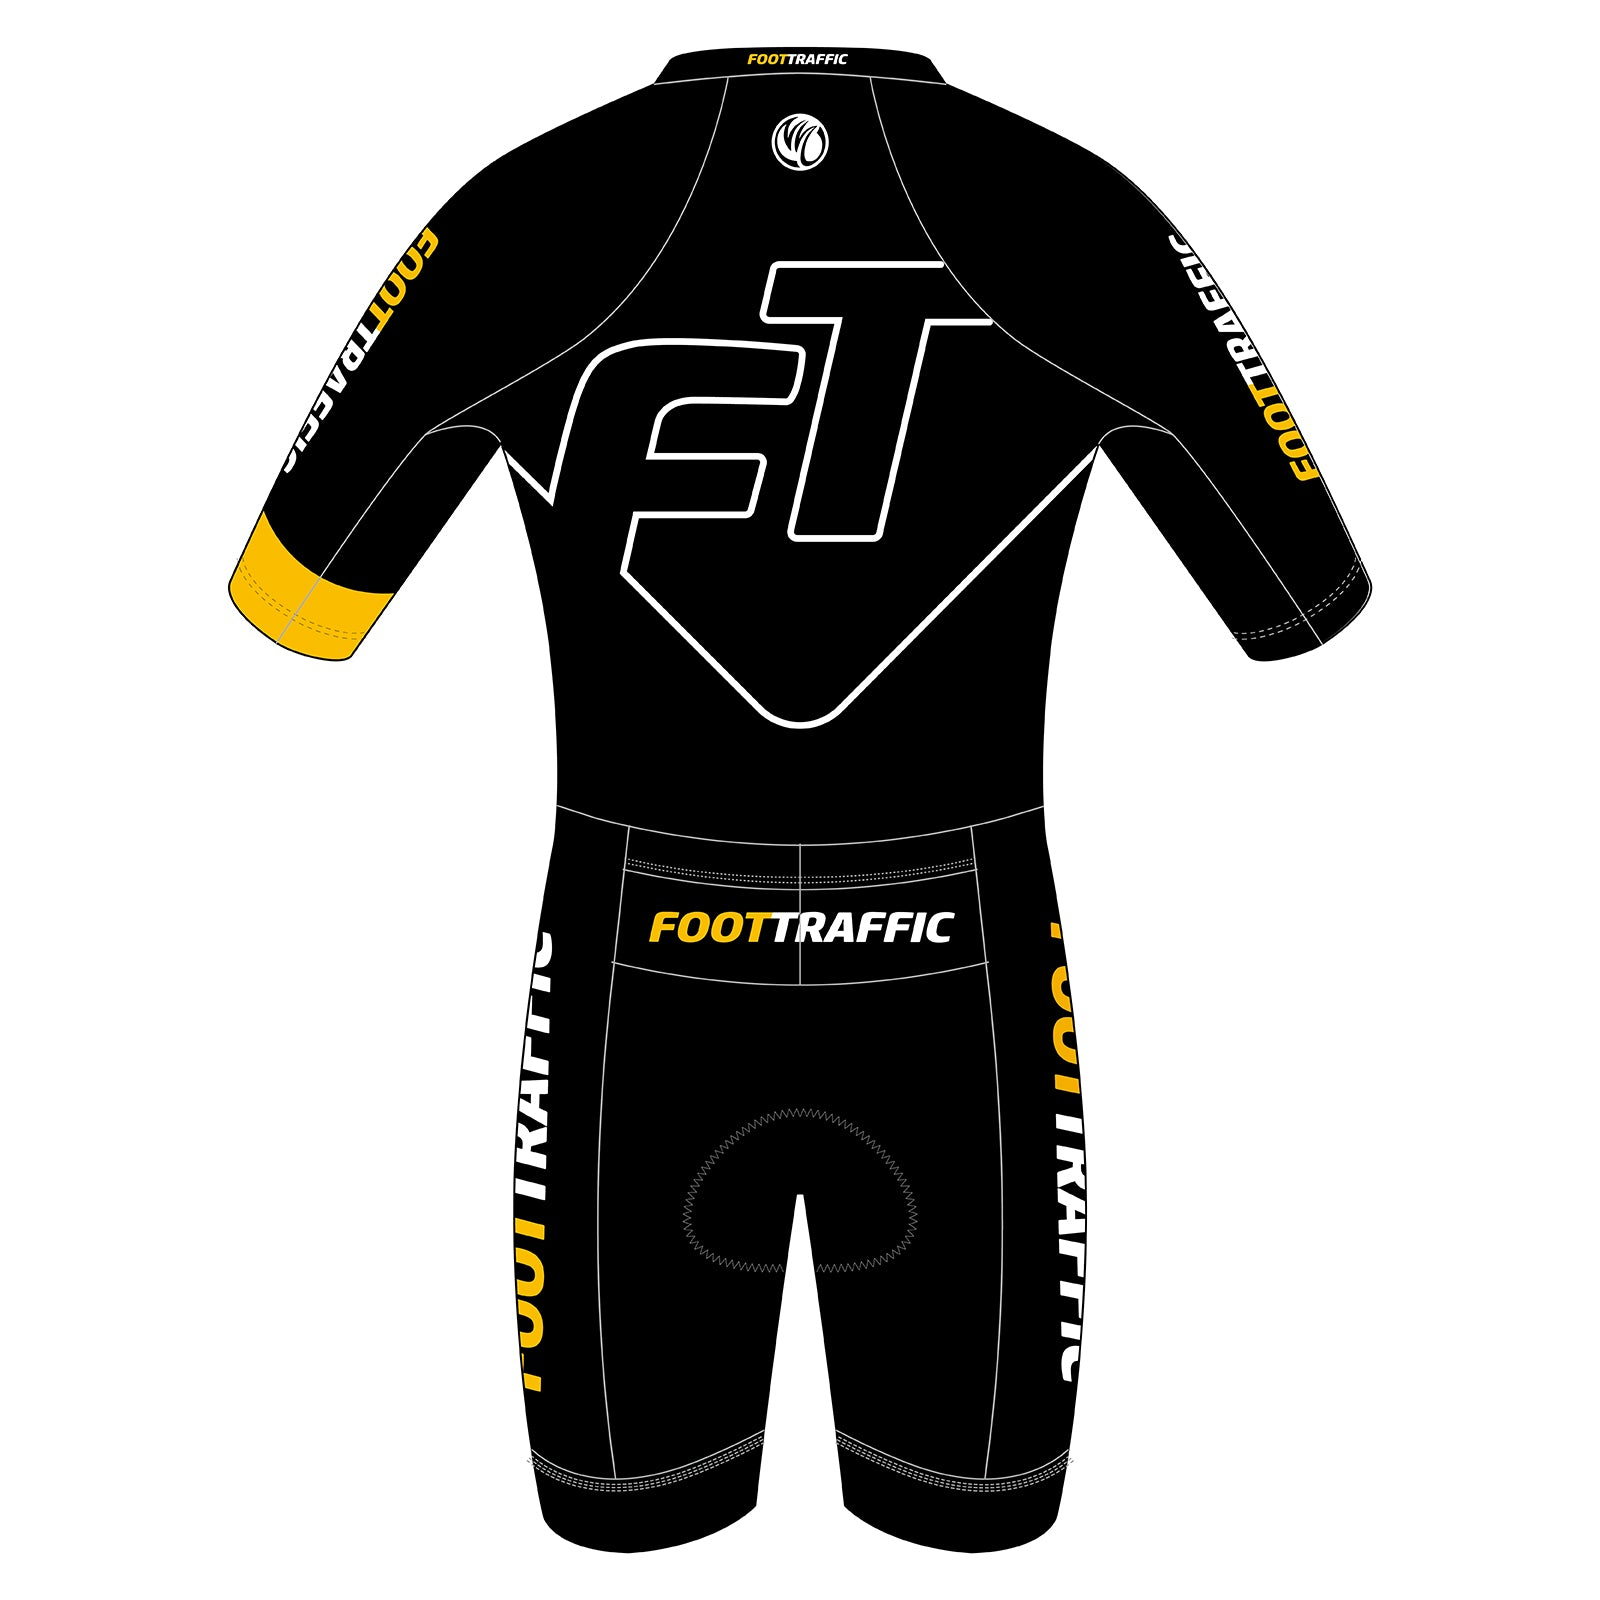 FOOTTRAFFIC Diamond Men's Short Sleeve Tri Suit